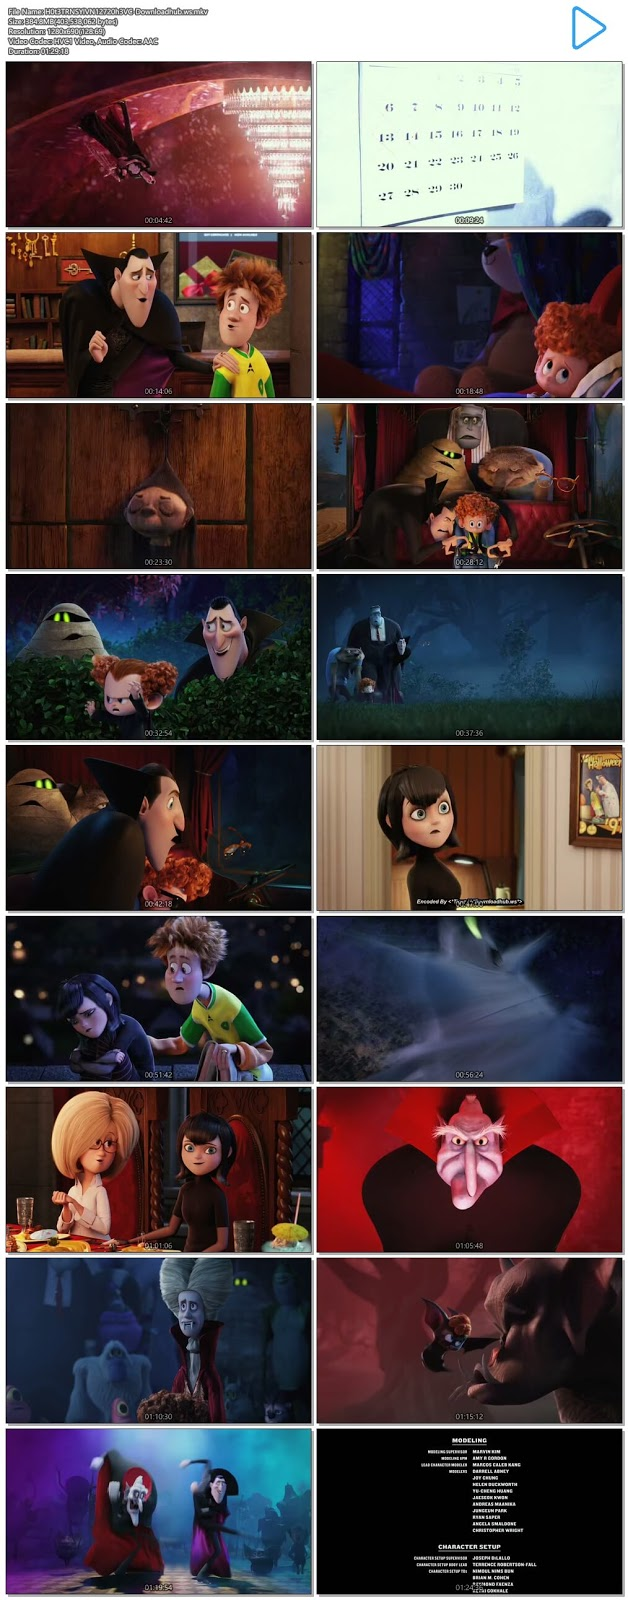 Hotel Transylvania 2 2015 Hindi Dual Audio 720p HEVC BluRay Free Download